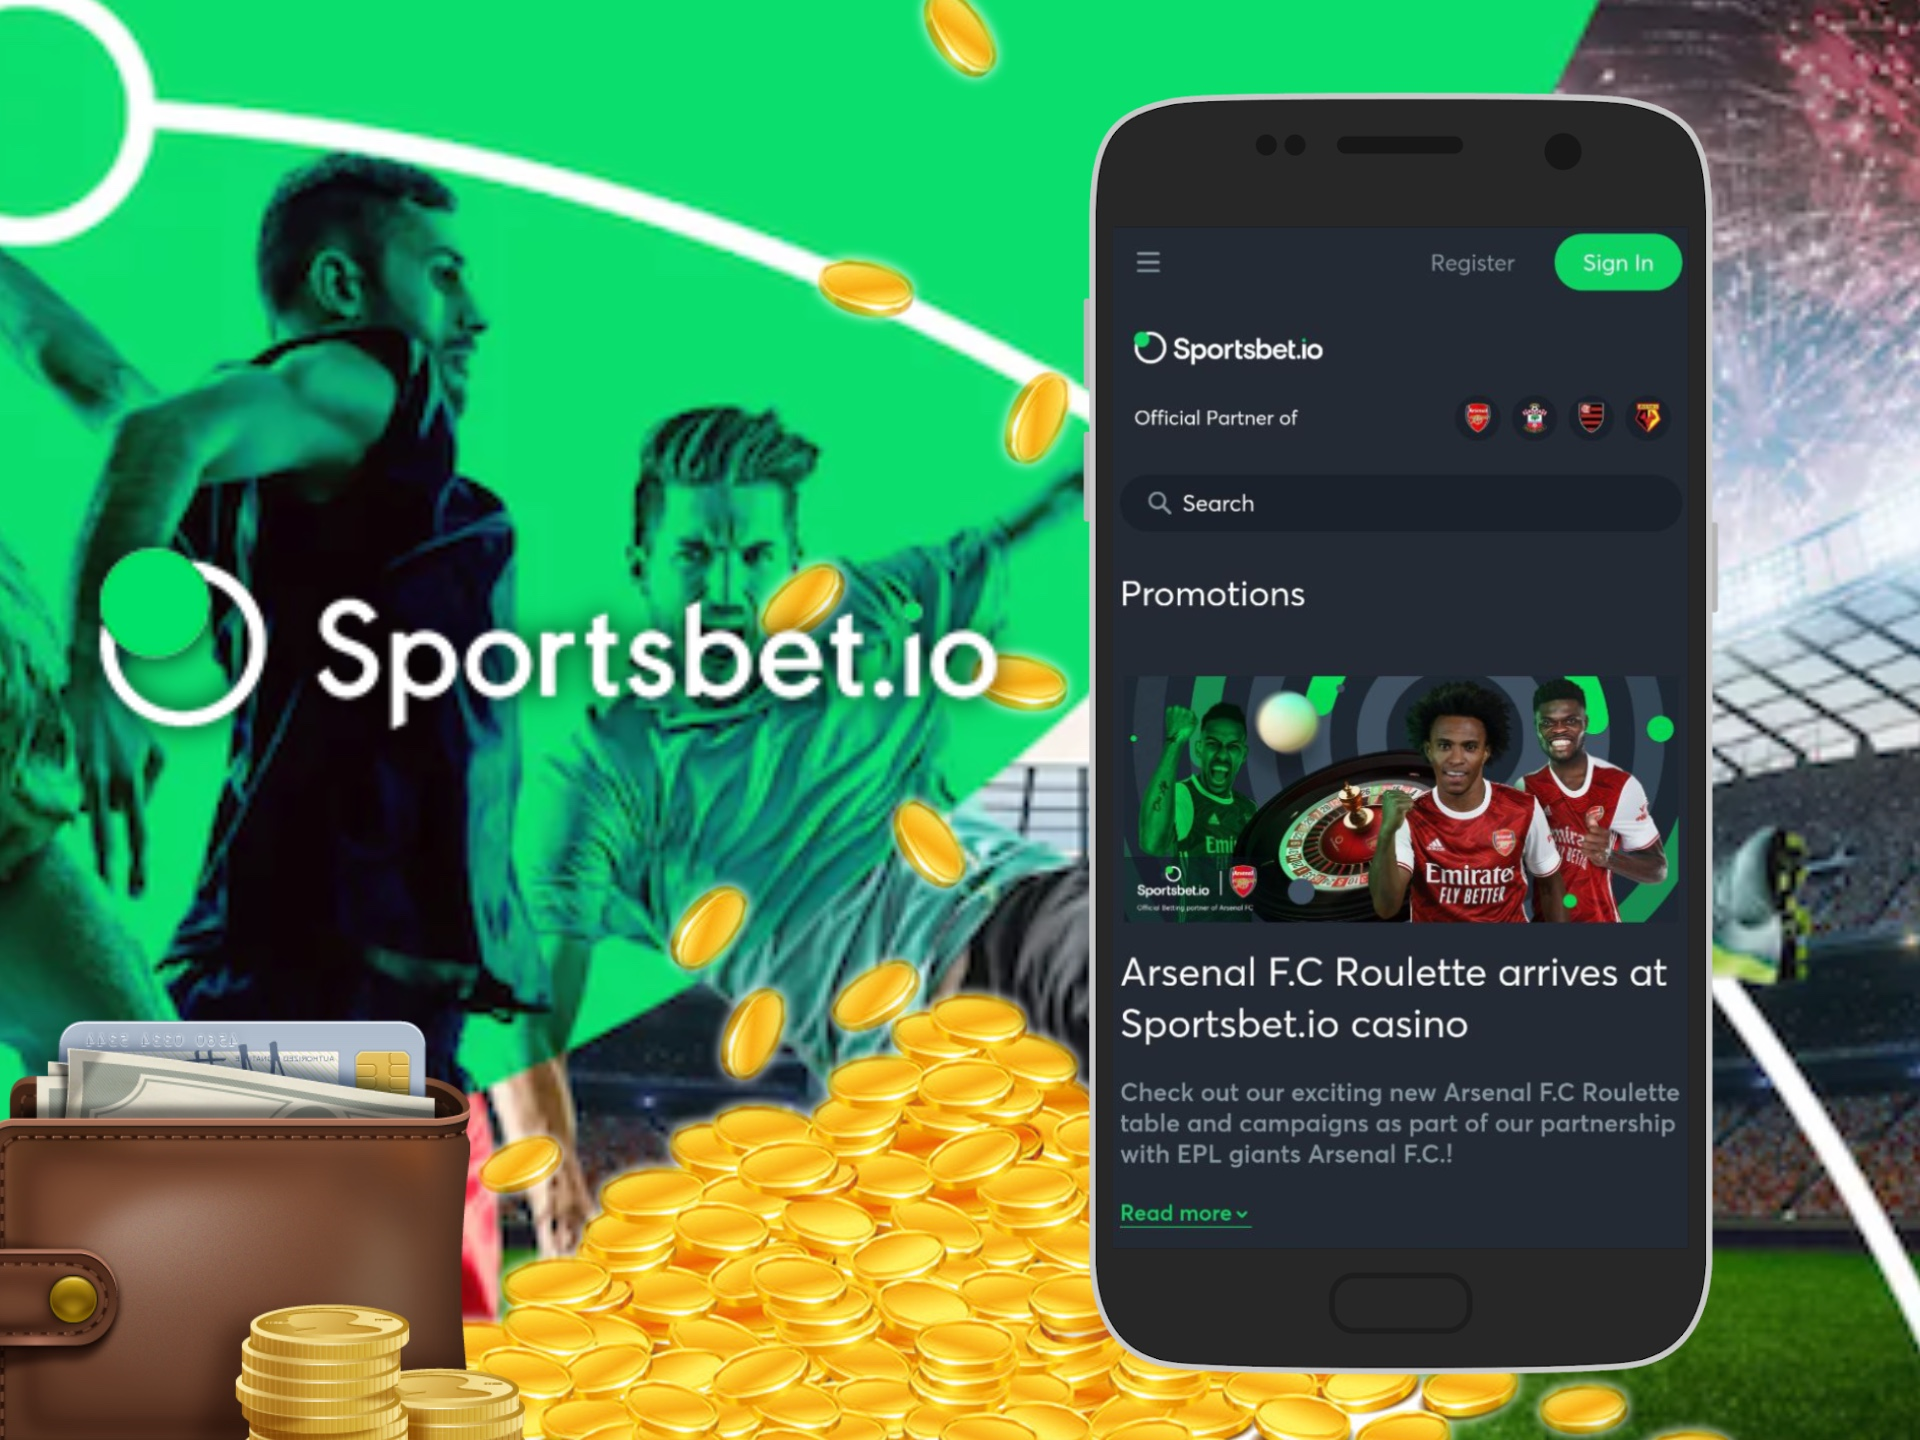 Sign up for Sportbet and get bonuses for betting via the app.